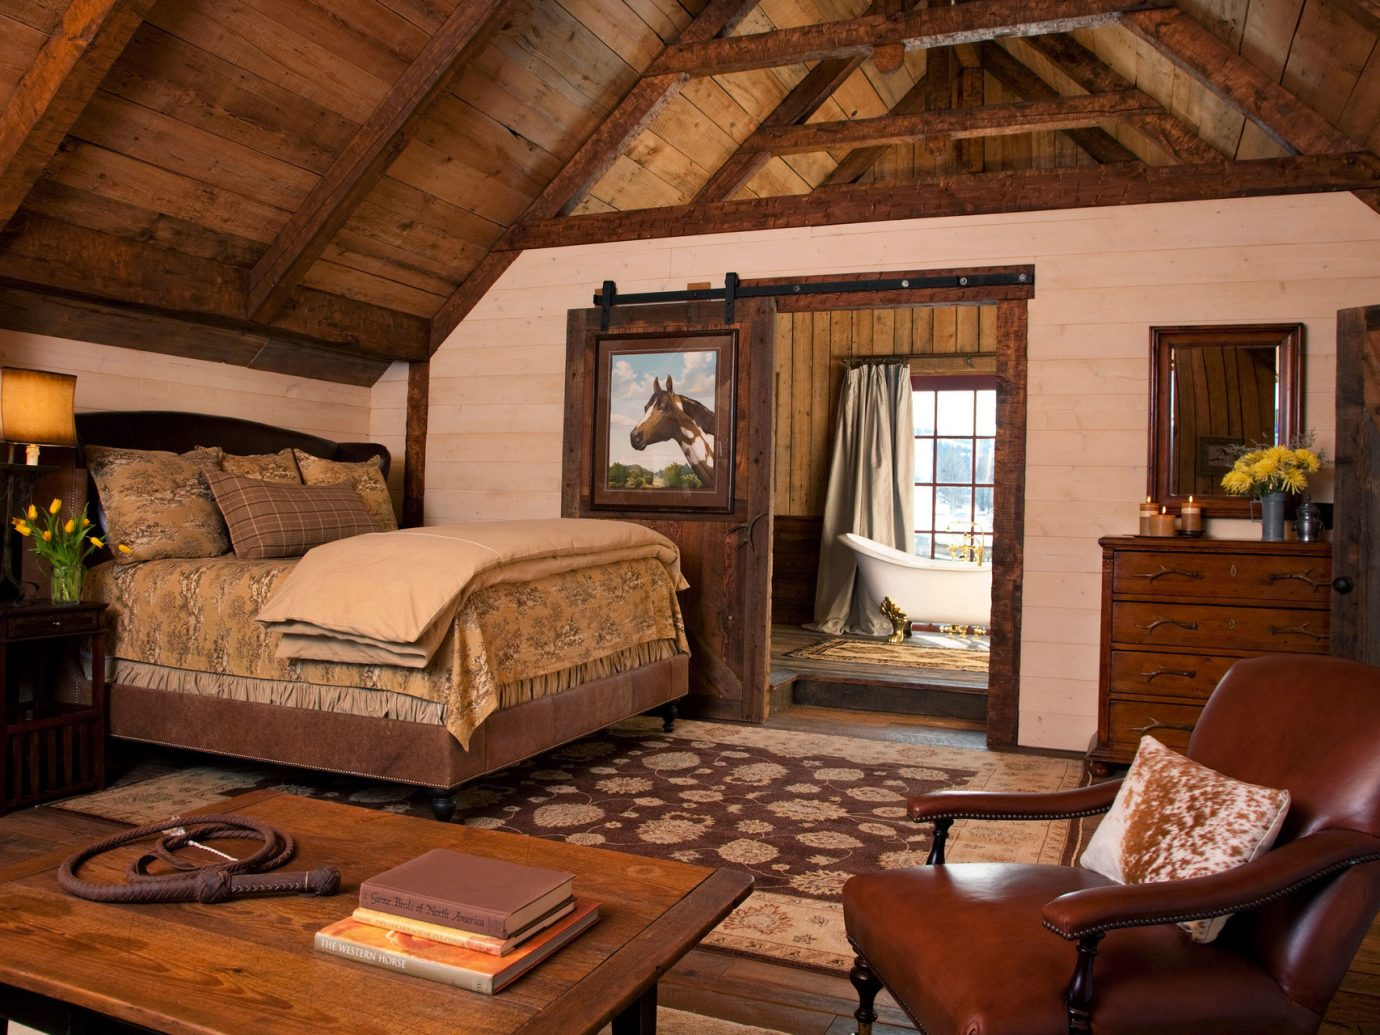 Bath bed Bedroom charming cozy extravagant homey Luxury Rustic Trip Ideas view warm indoor Living room table floor ceiling property chair living room estate log cabin home house cottage furniture farmhouse hardwood interior design wood real estate Villa area dining table